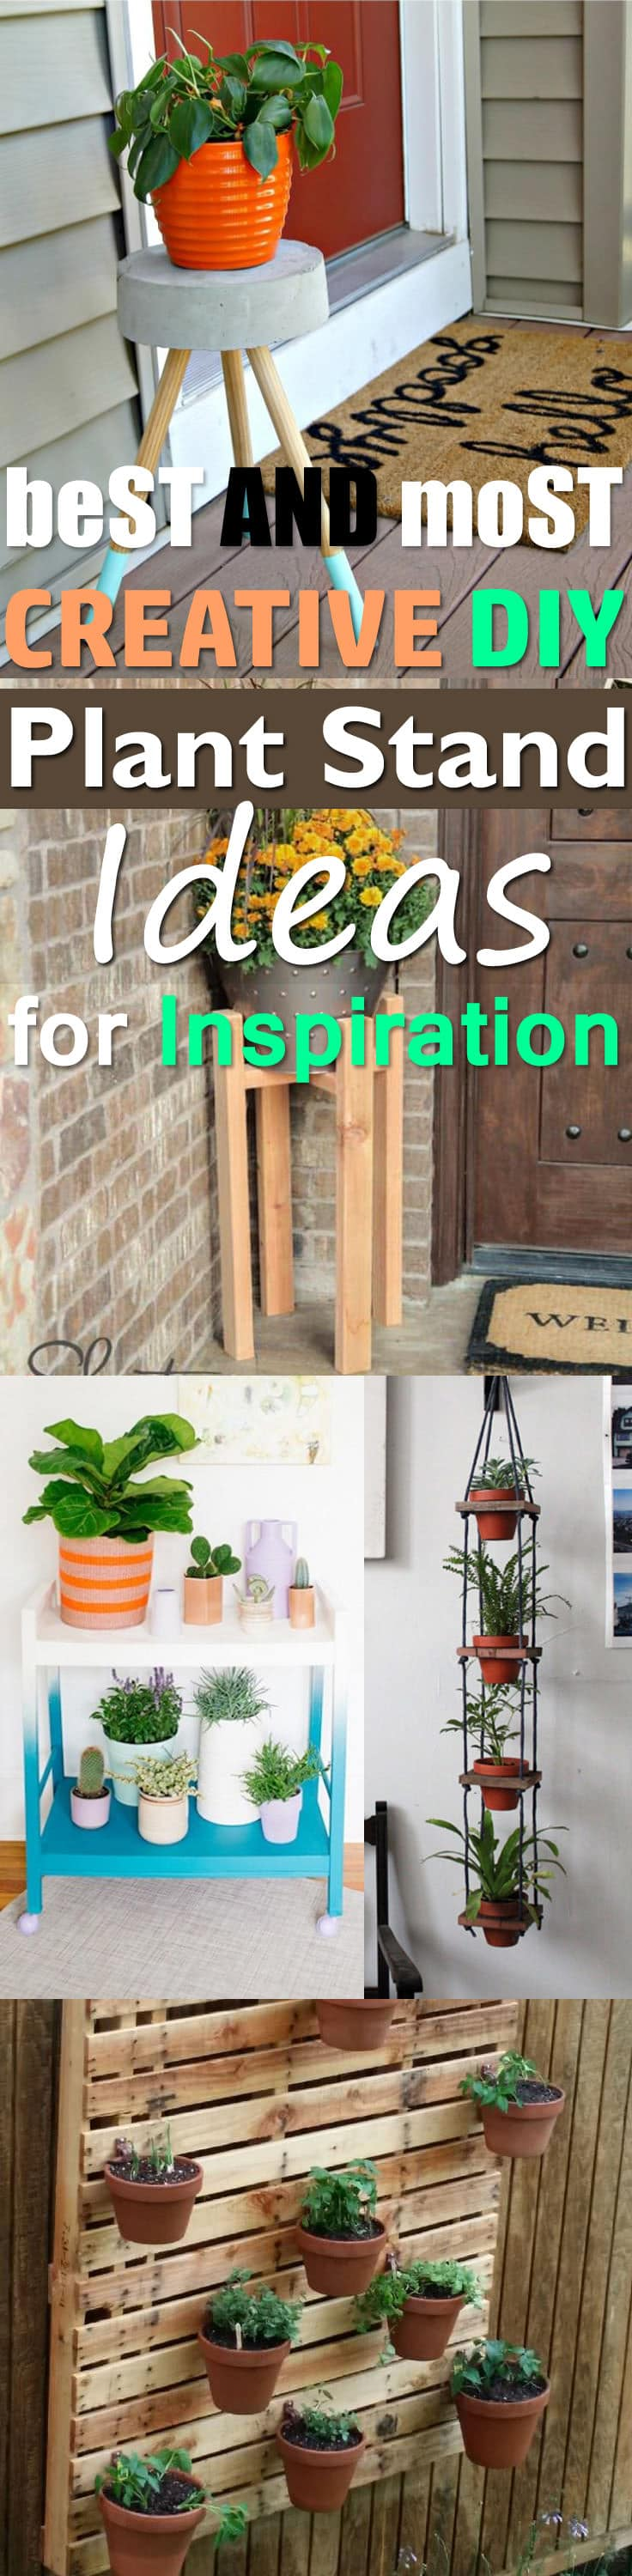 best-and-most-creative-diy-plant-stand-ideas-for-inspiration